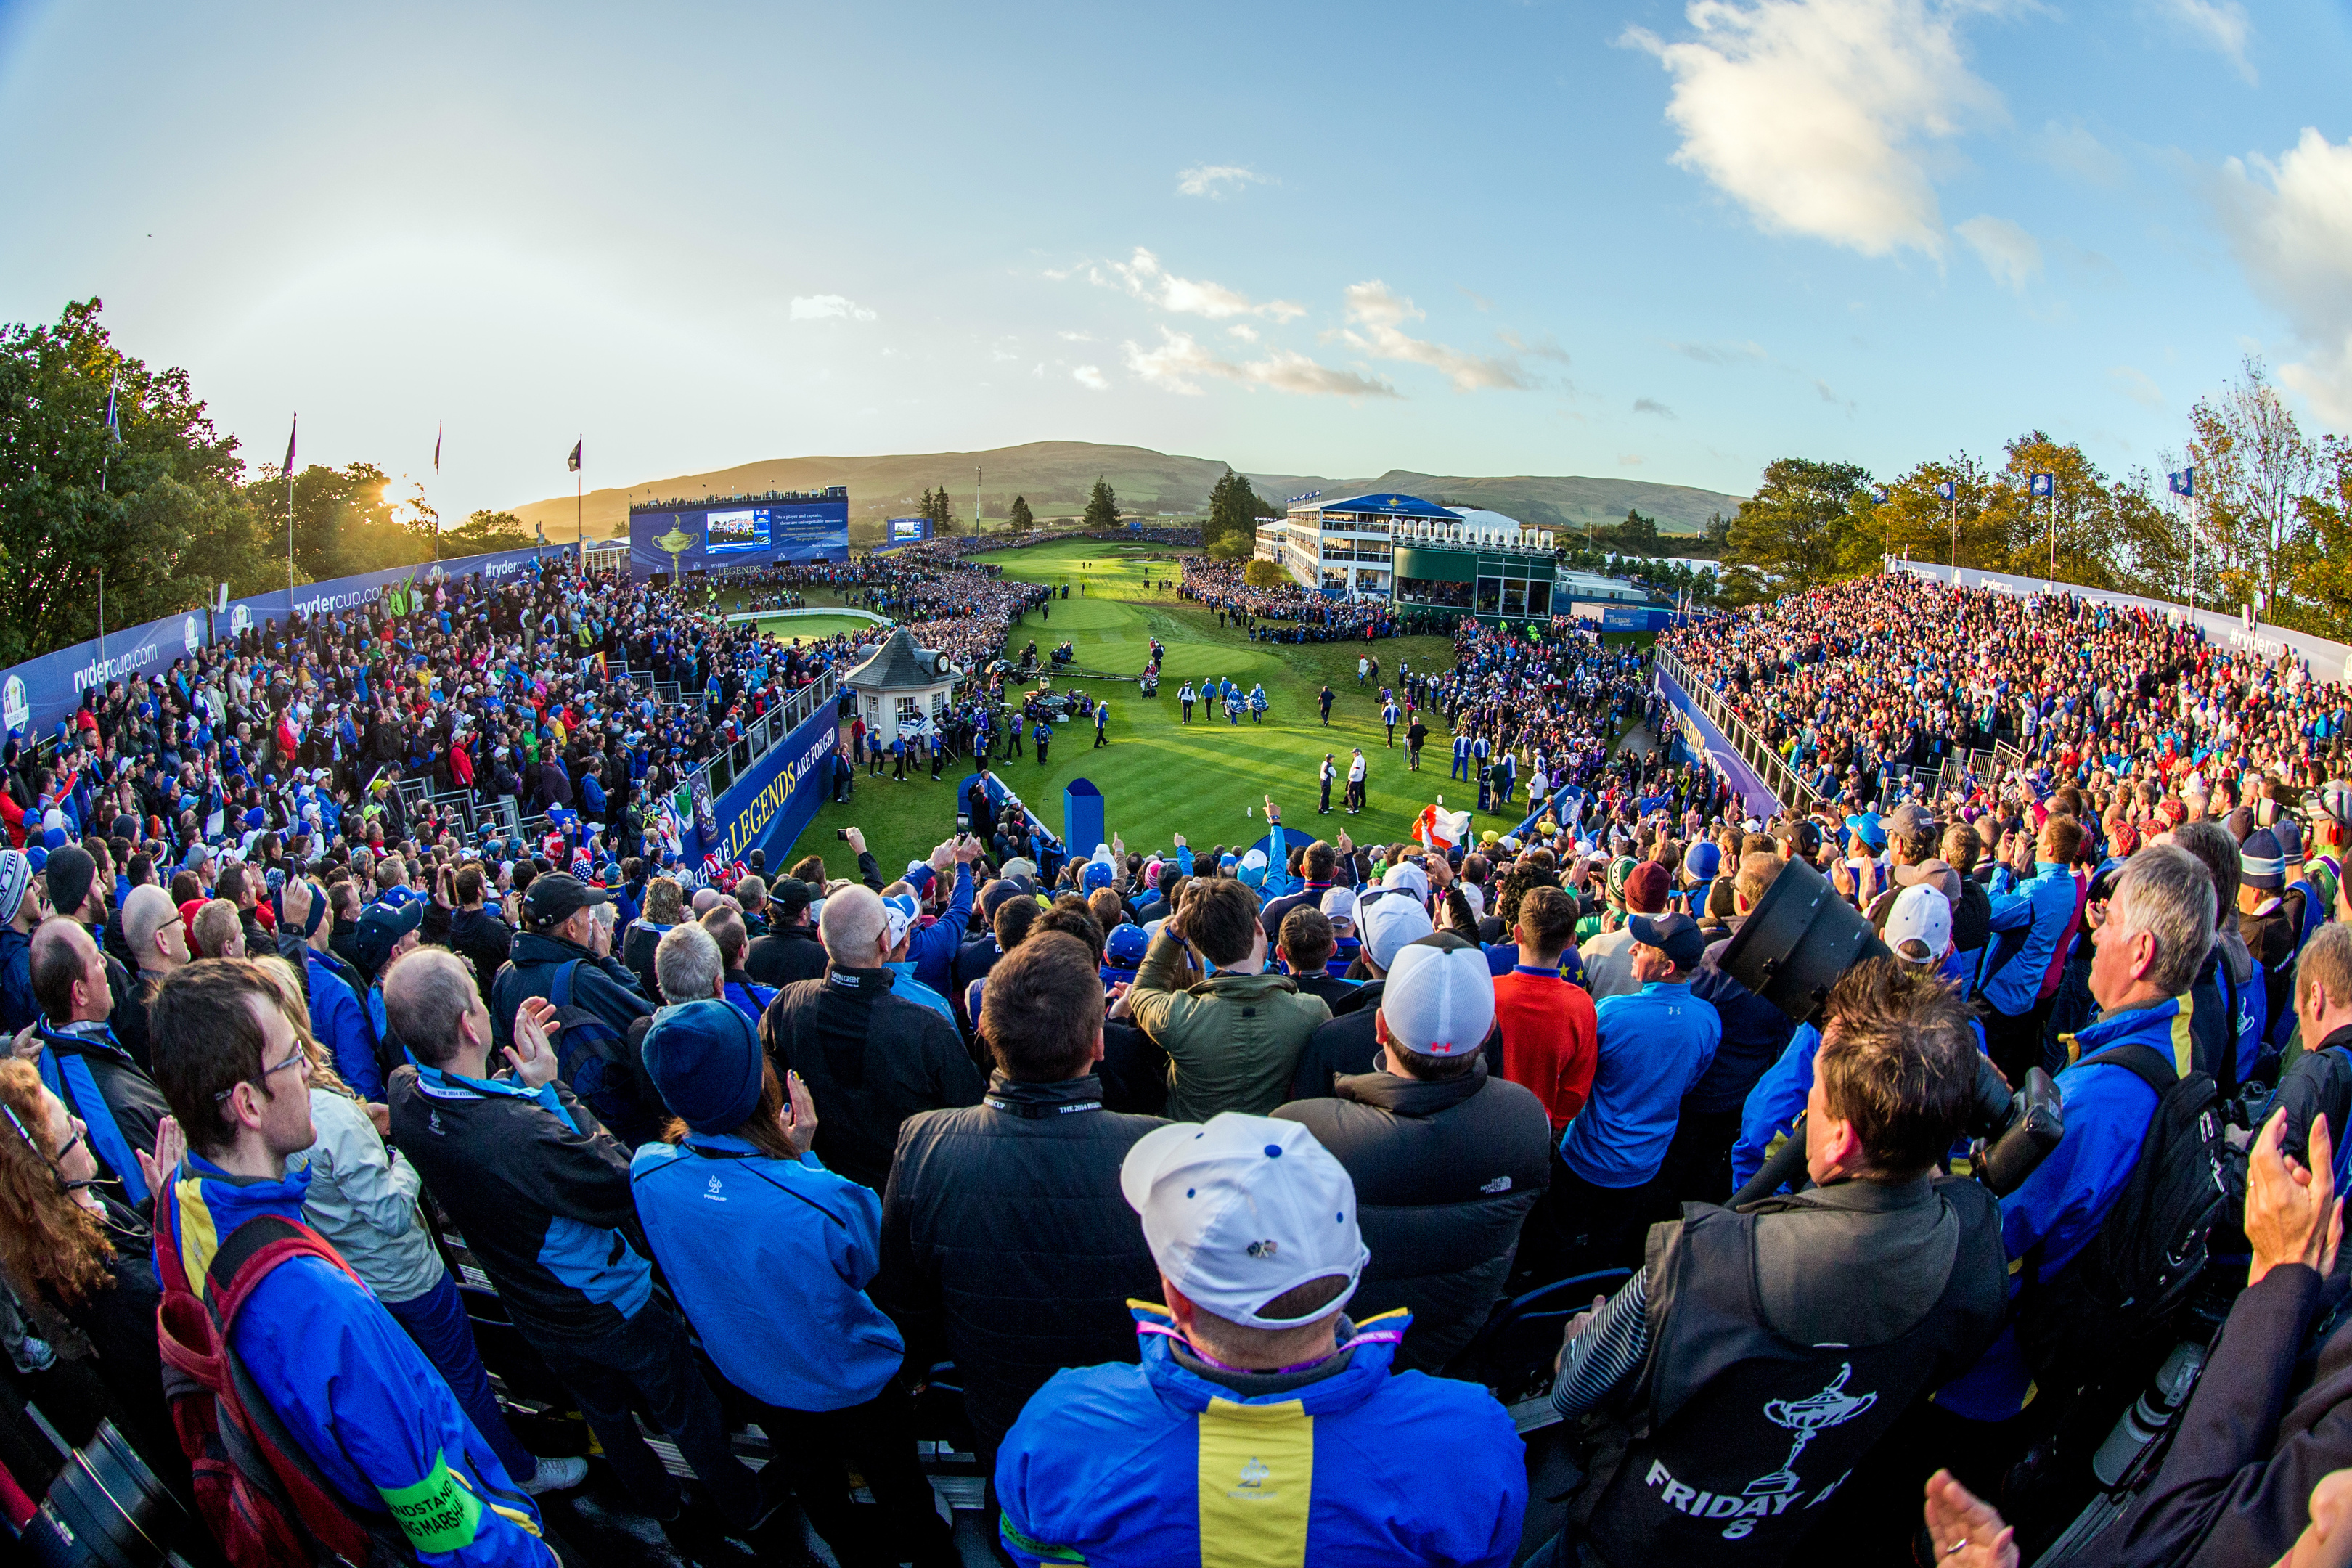 The Ryder Cup in 2014 was hailed as a huge success for the local economy.